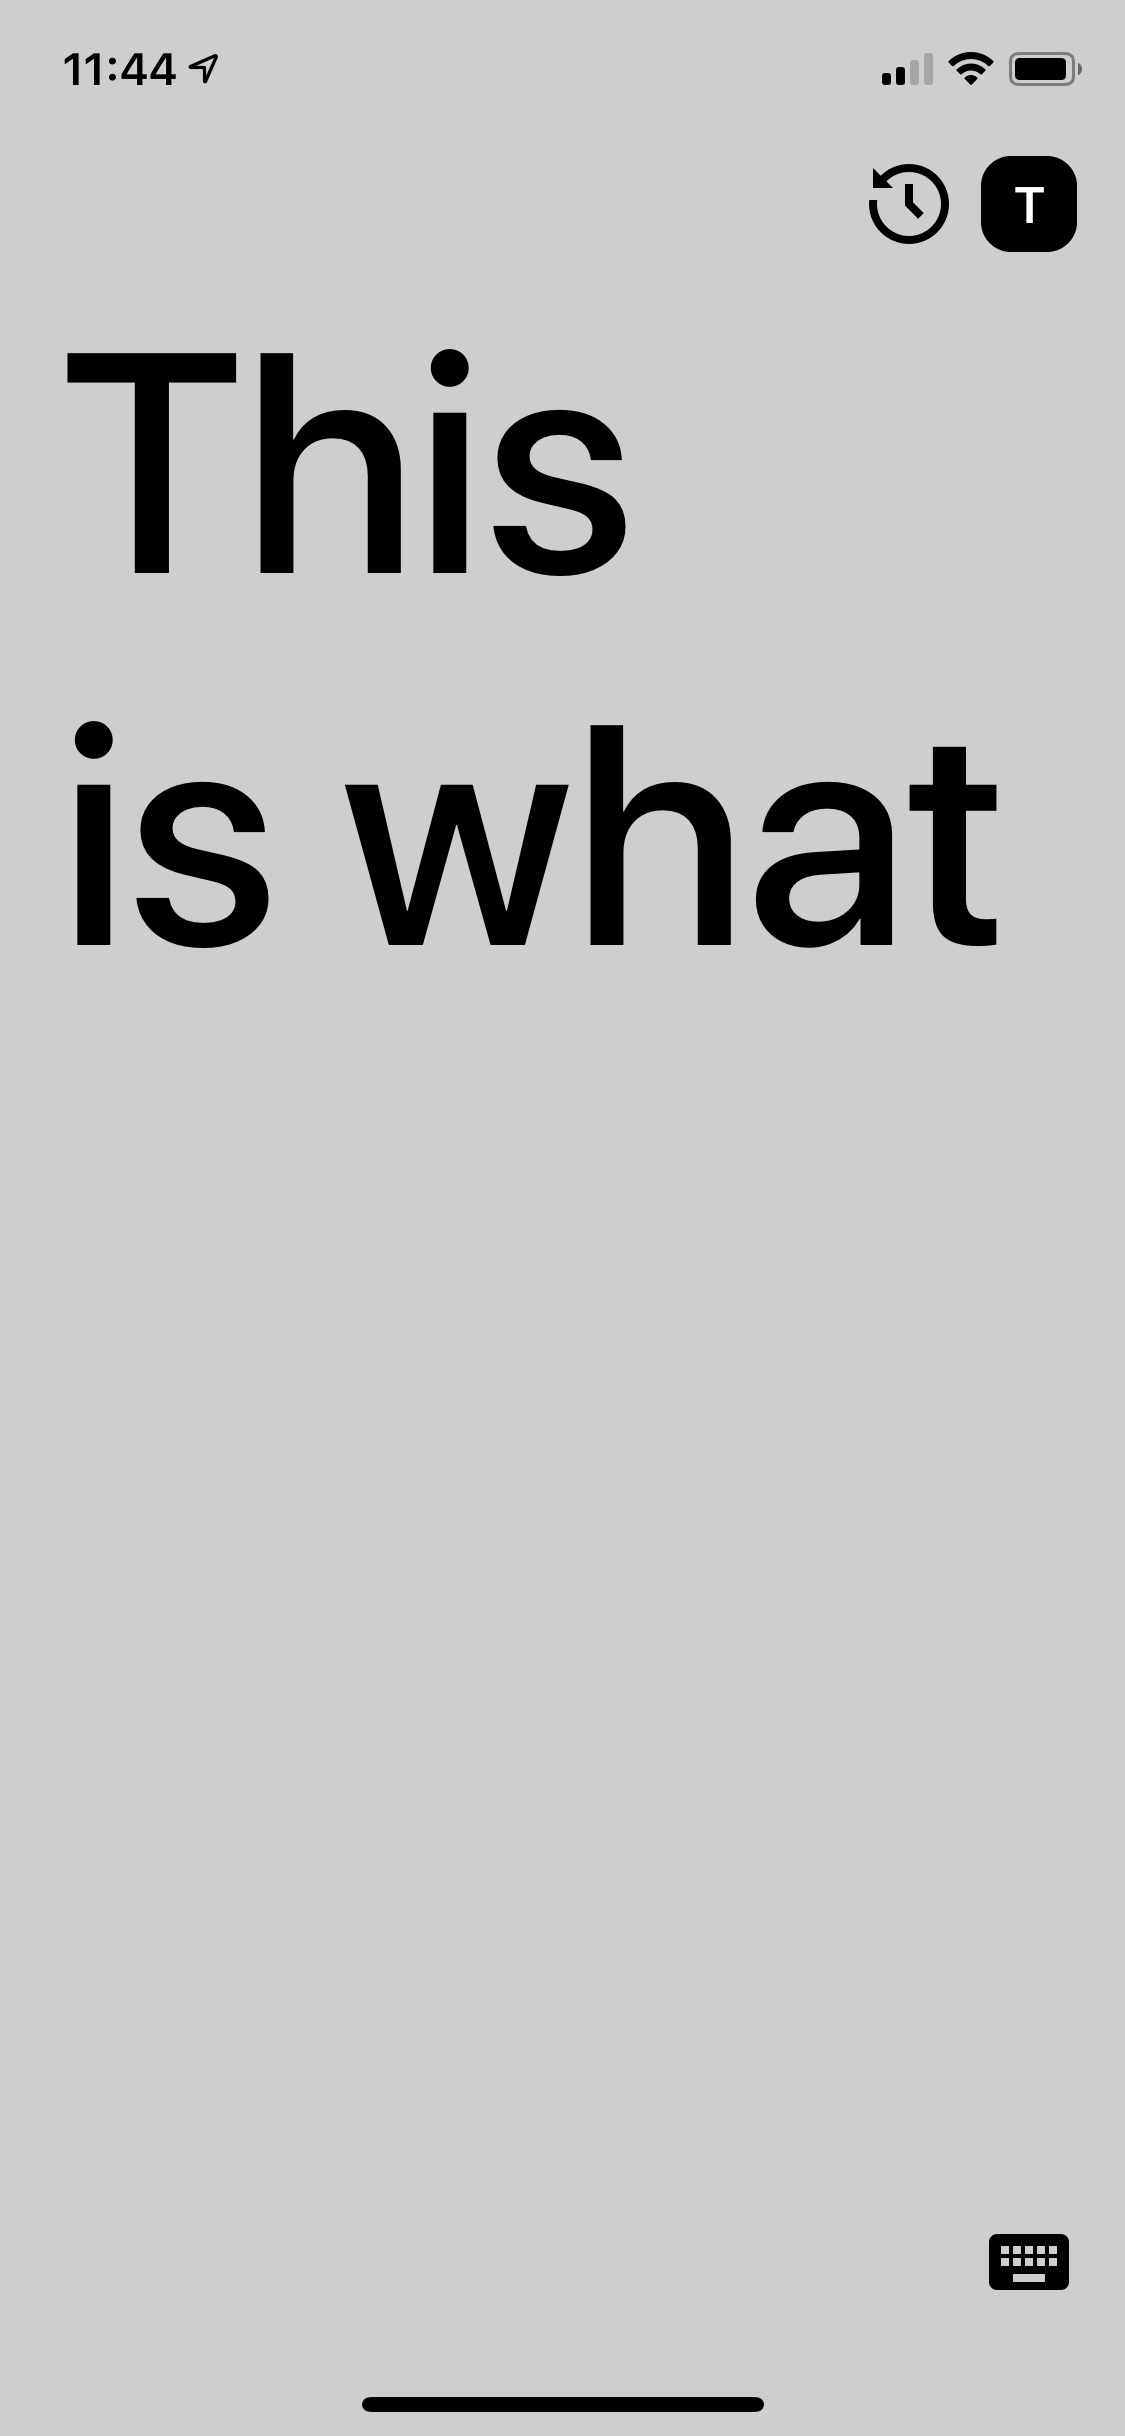 The screen is slightly darkened while listening, and the what a user is saying is beginning to appear